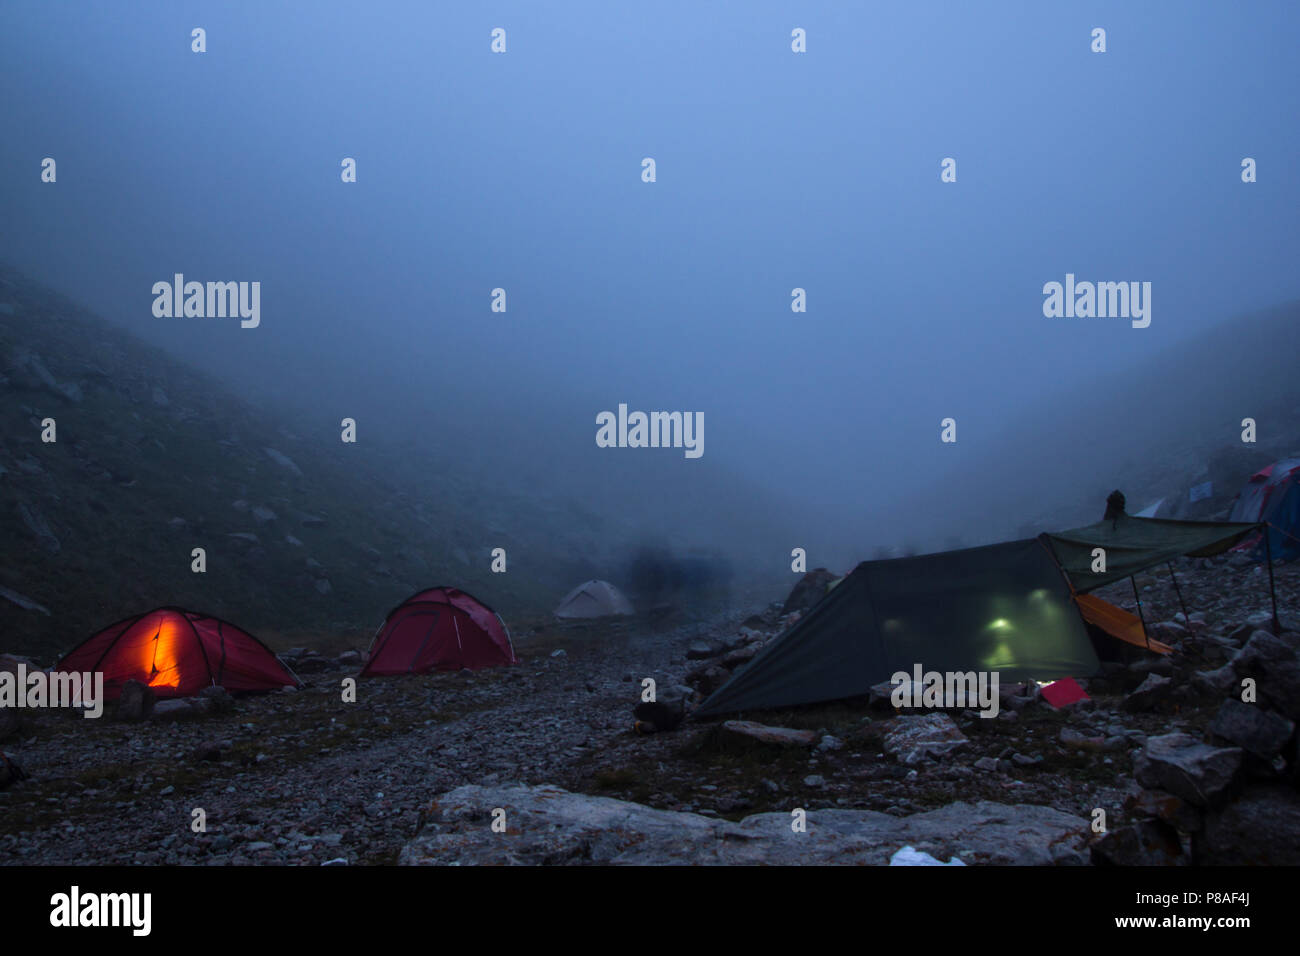 camping with tents and tourists in mountain valley at night and fog, Russian Federation, Caucasus - Stock Image